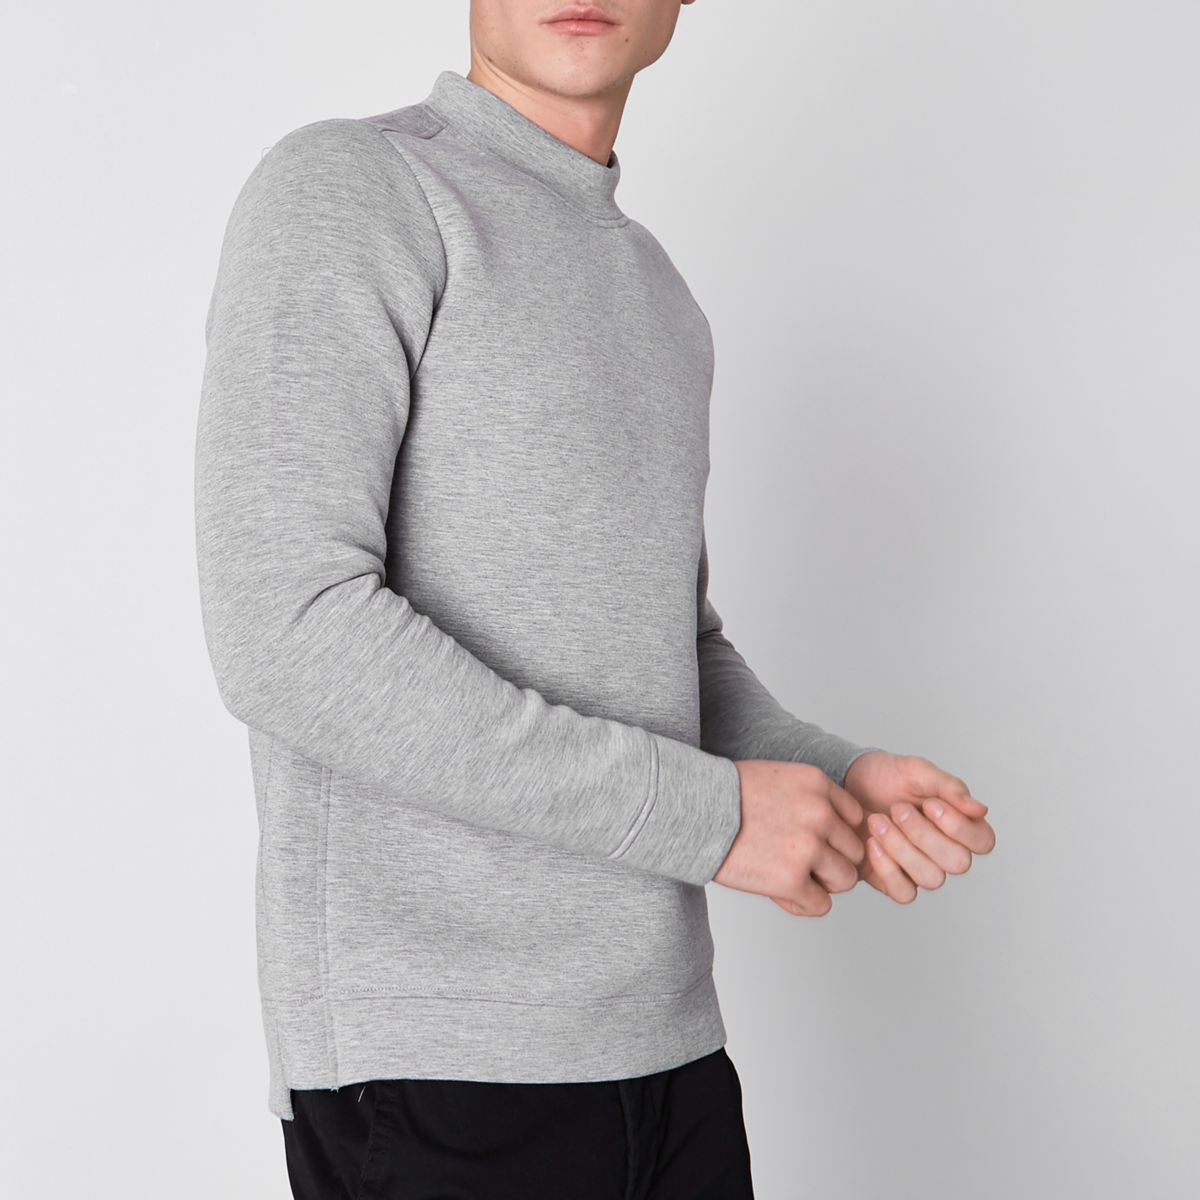 Grey marl Jack & Jones Premium sweatshirt